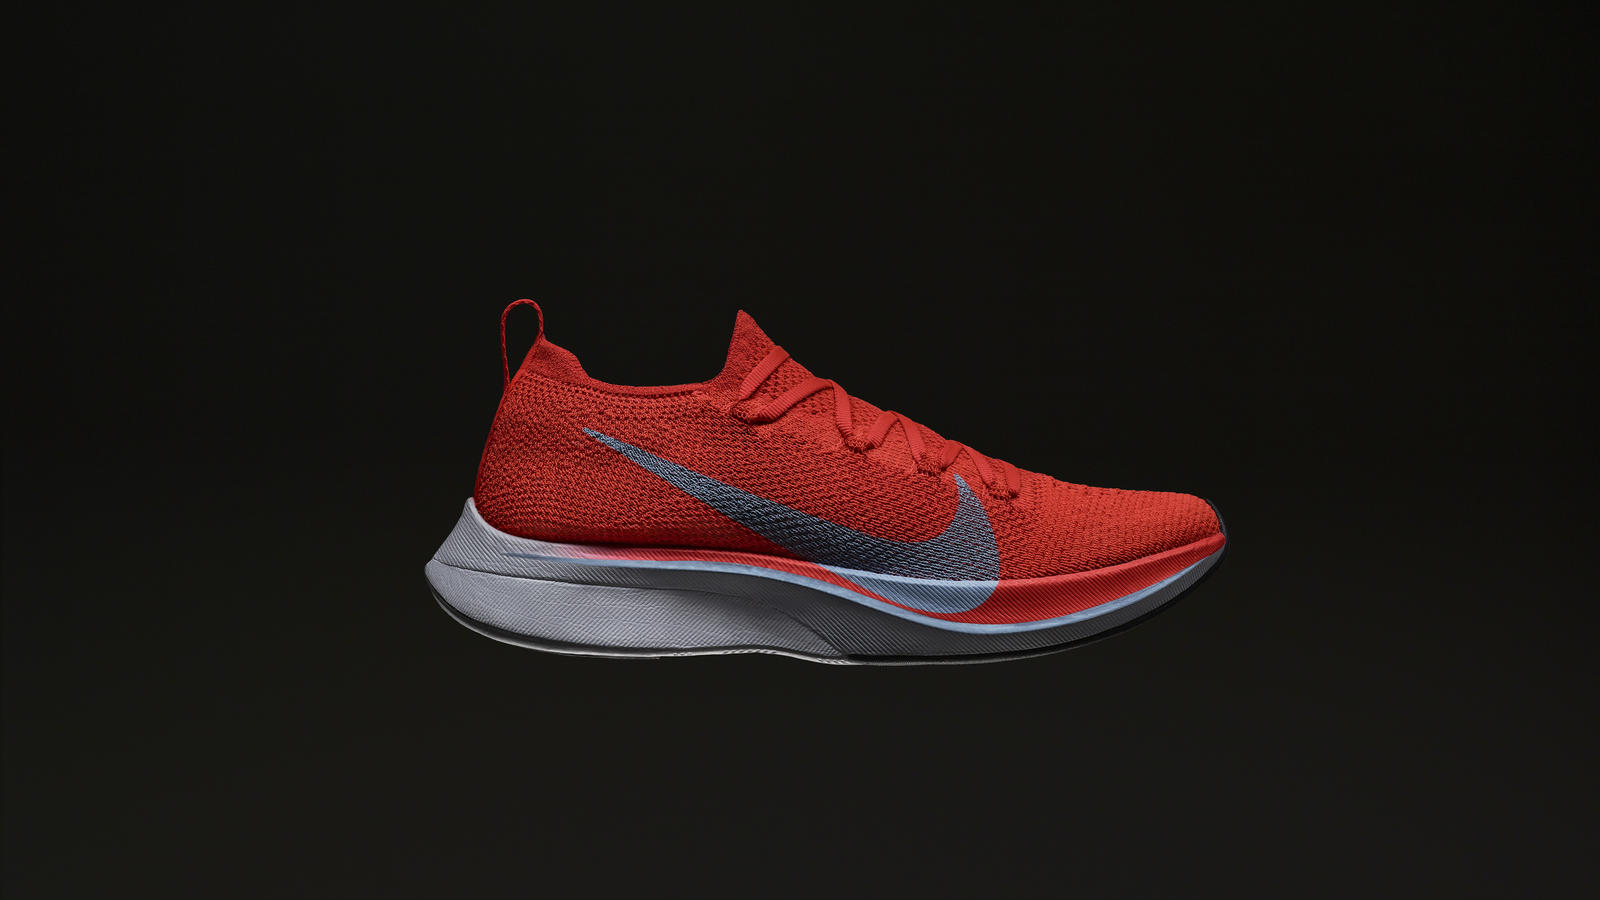 How to Get the Nike Zoom Vaporfly 4% - Nike News 2dd8ff17f